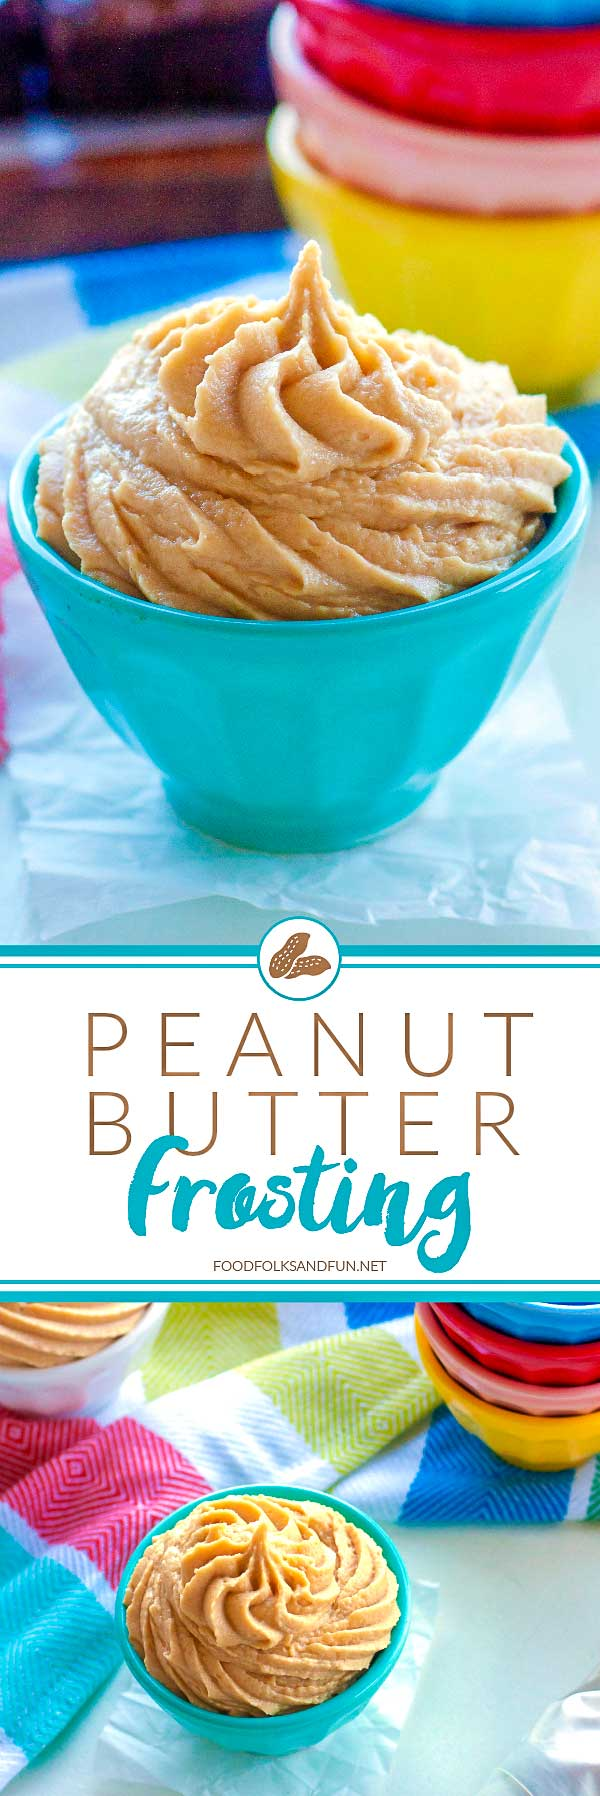 Peanut butter frosting piped into bowls.